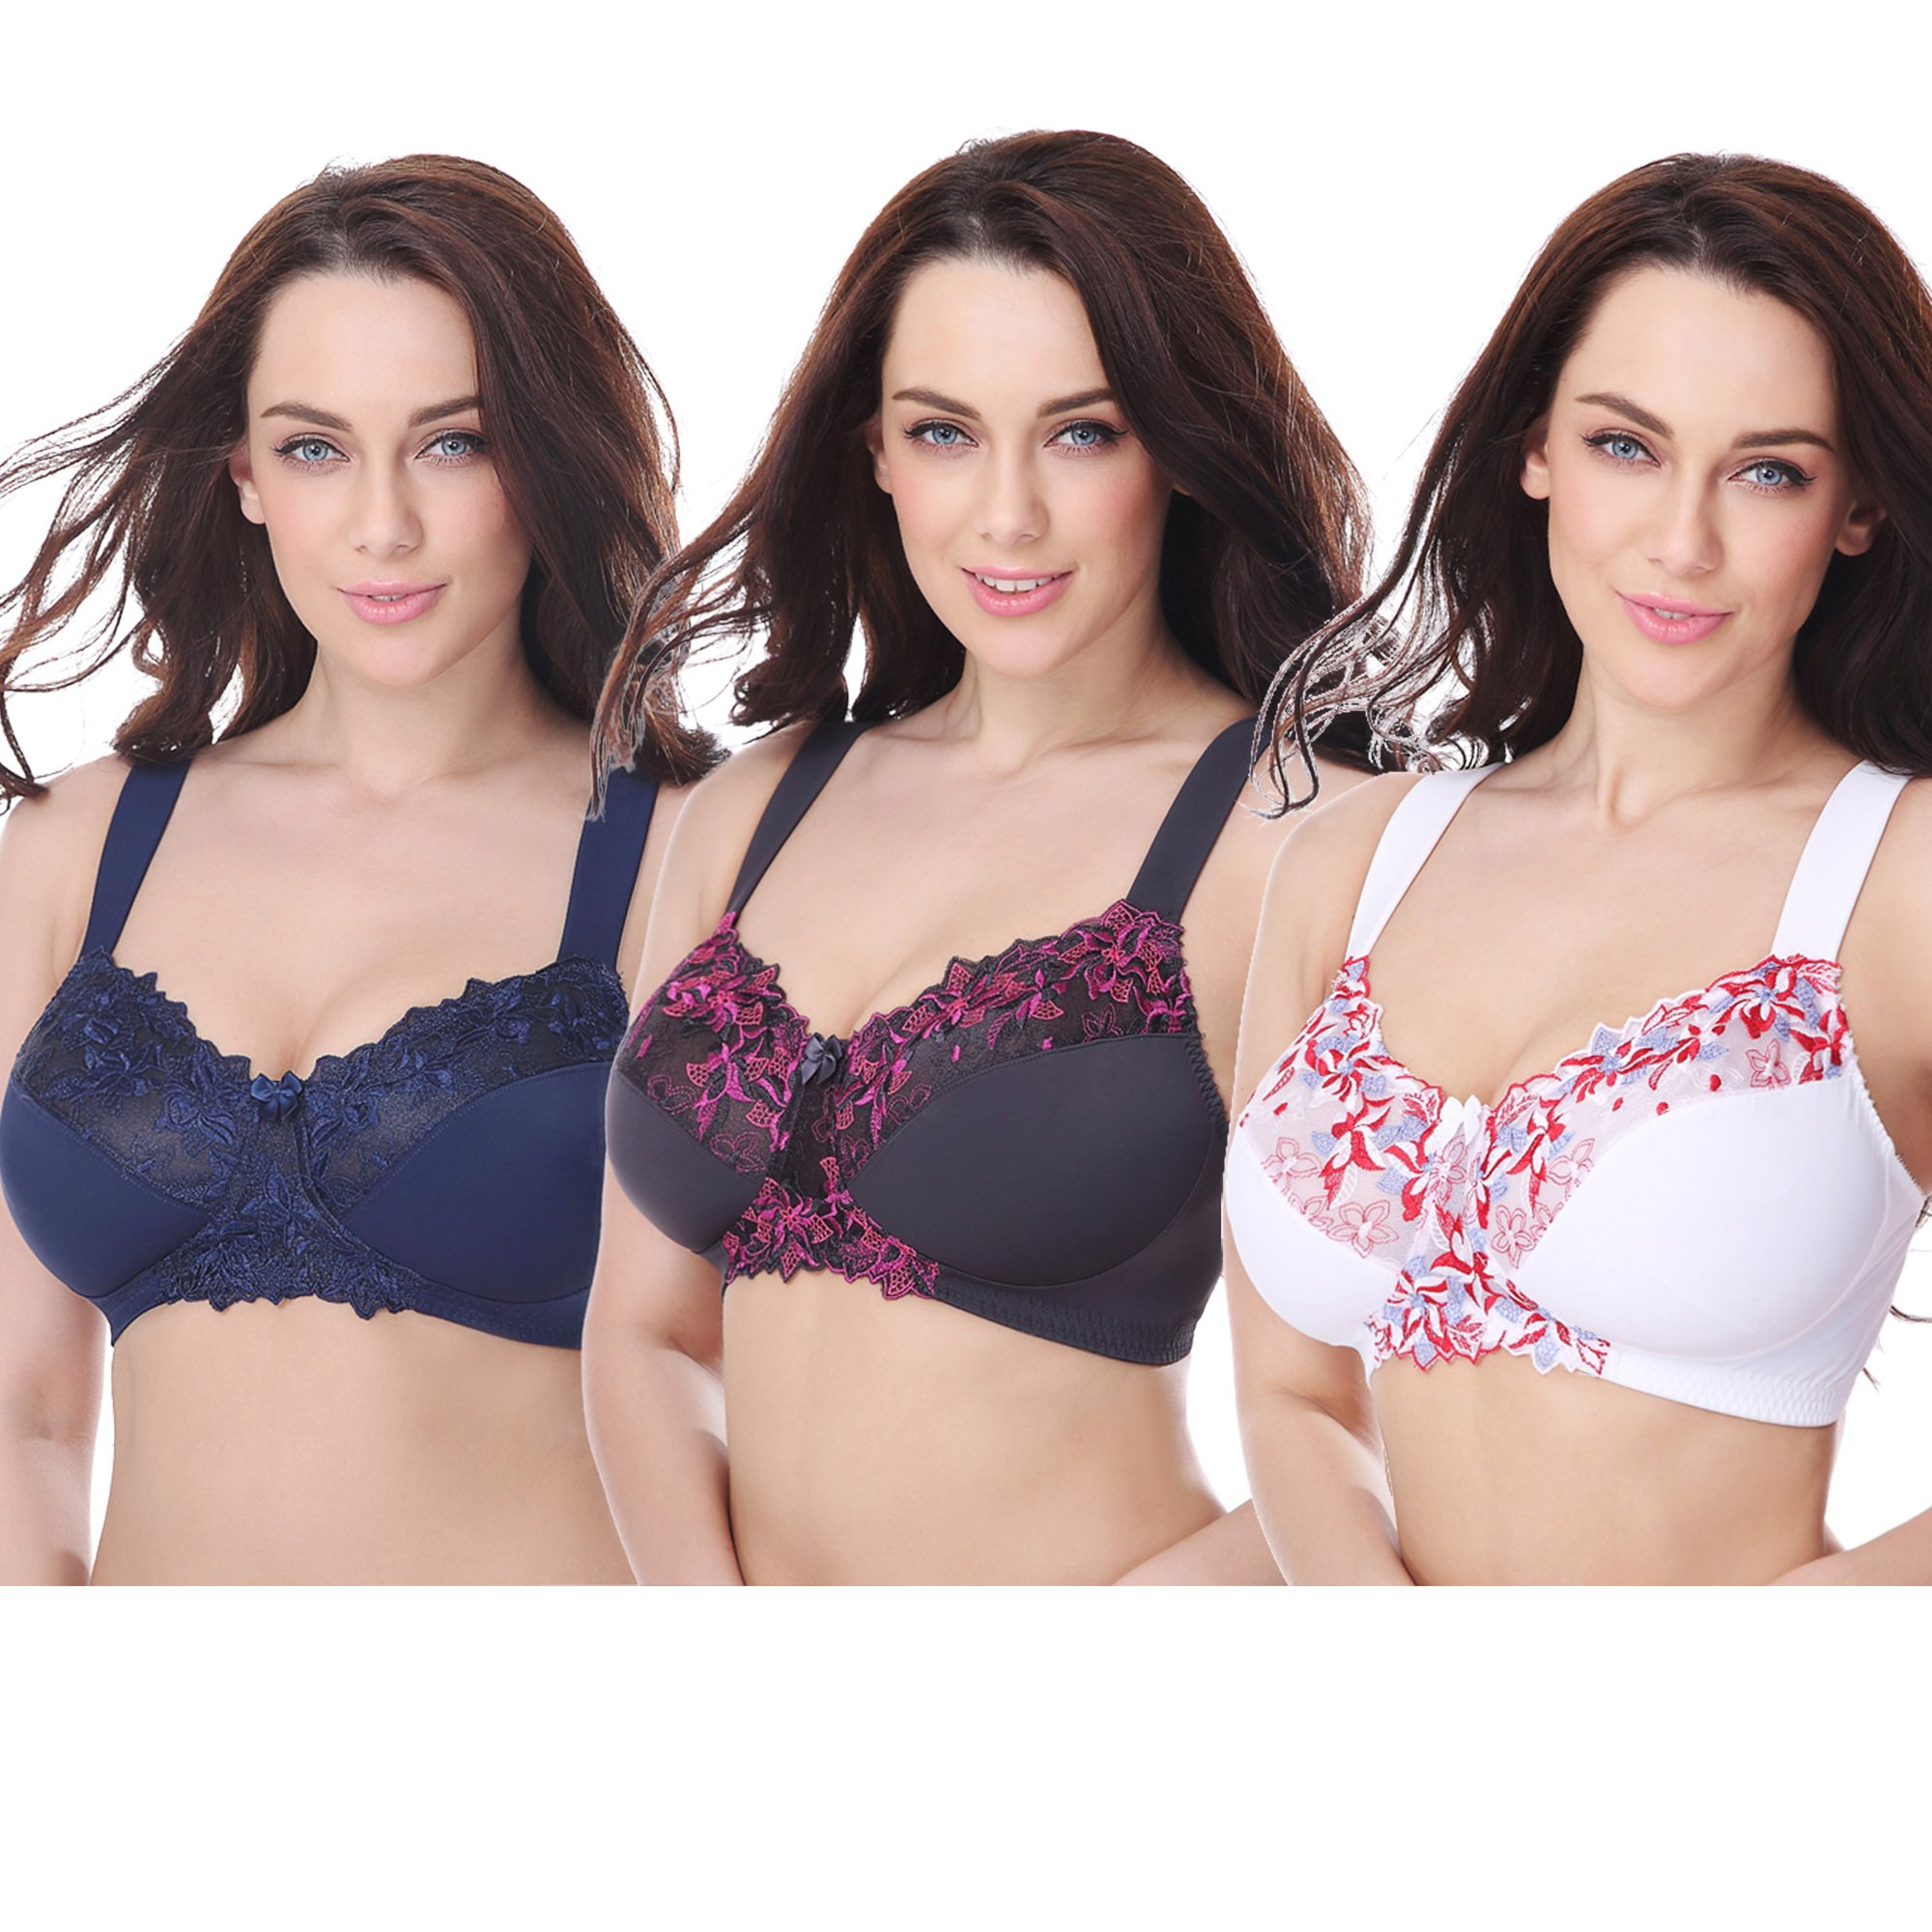 38b59aee31 Curve Muse Plus Size Minimizer Unlined Wirefree Bra with Lace  Embroidery-3Pack-WHITE